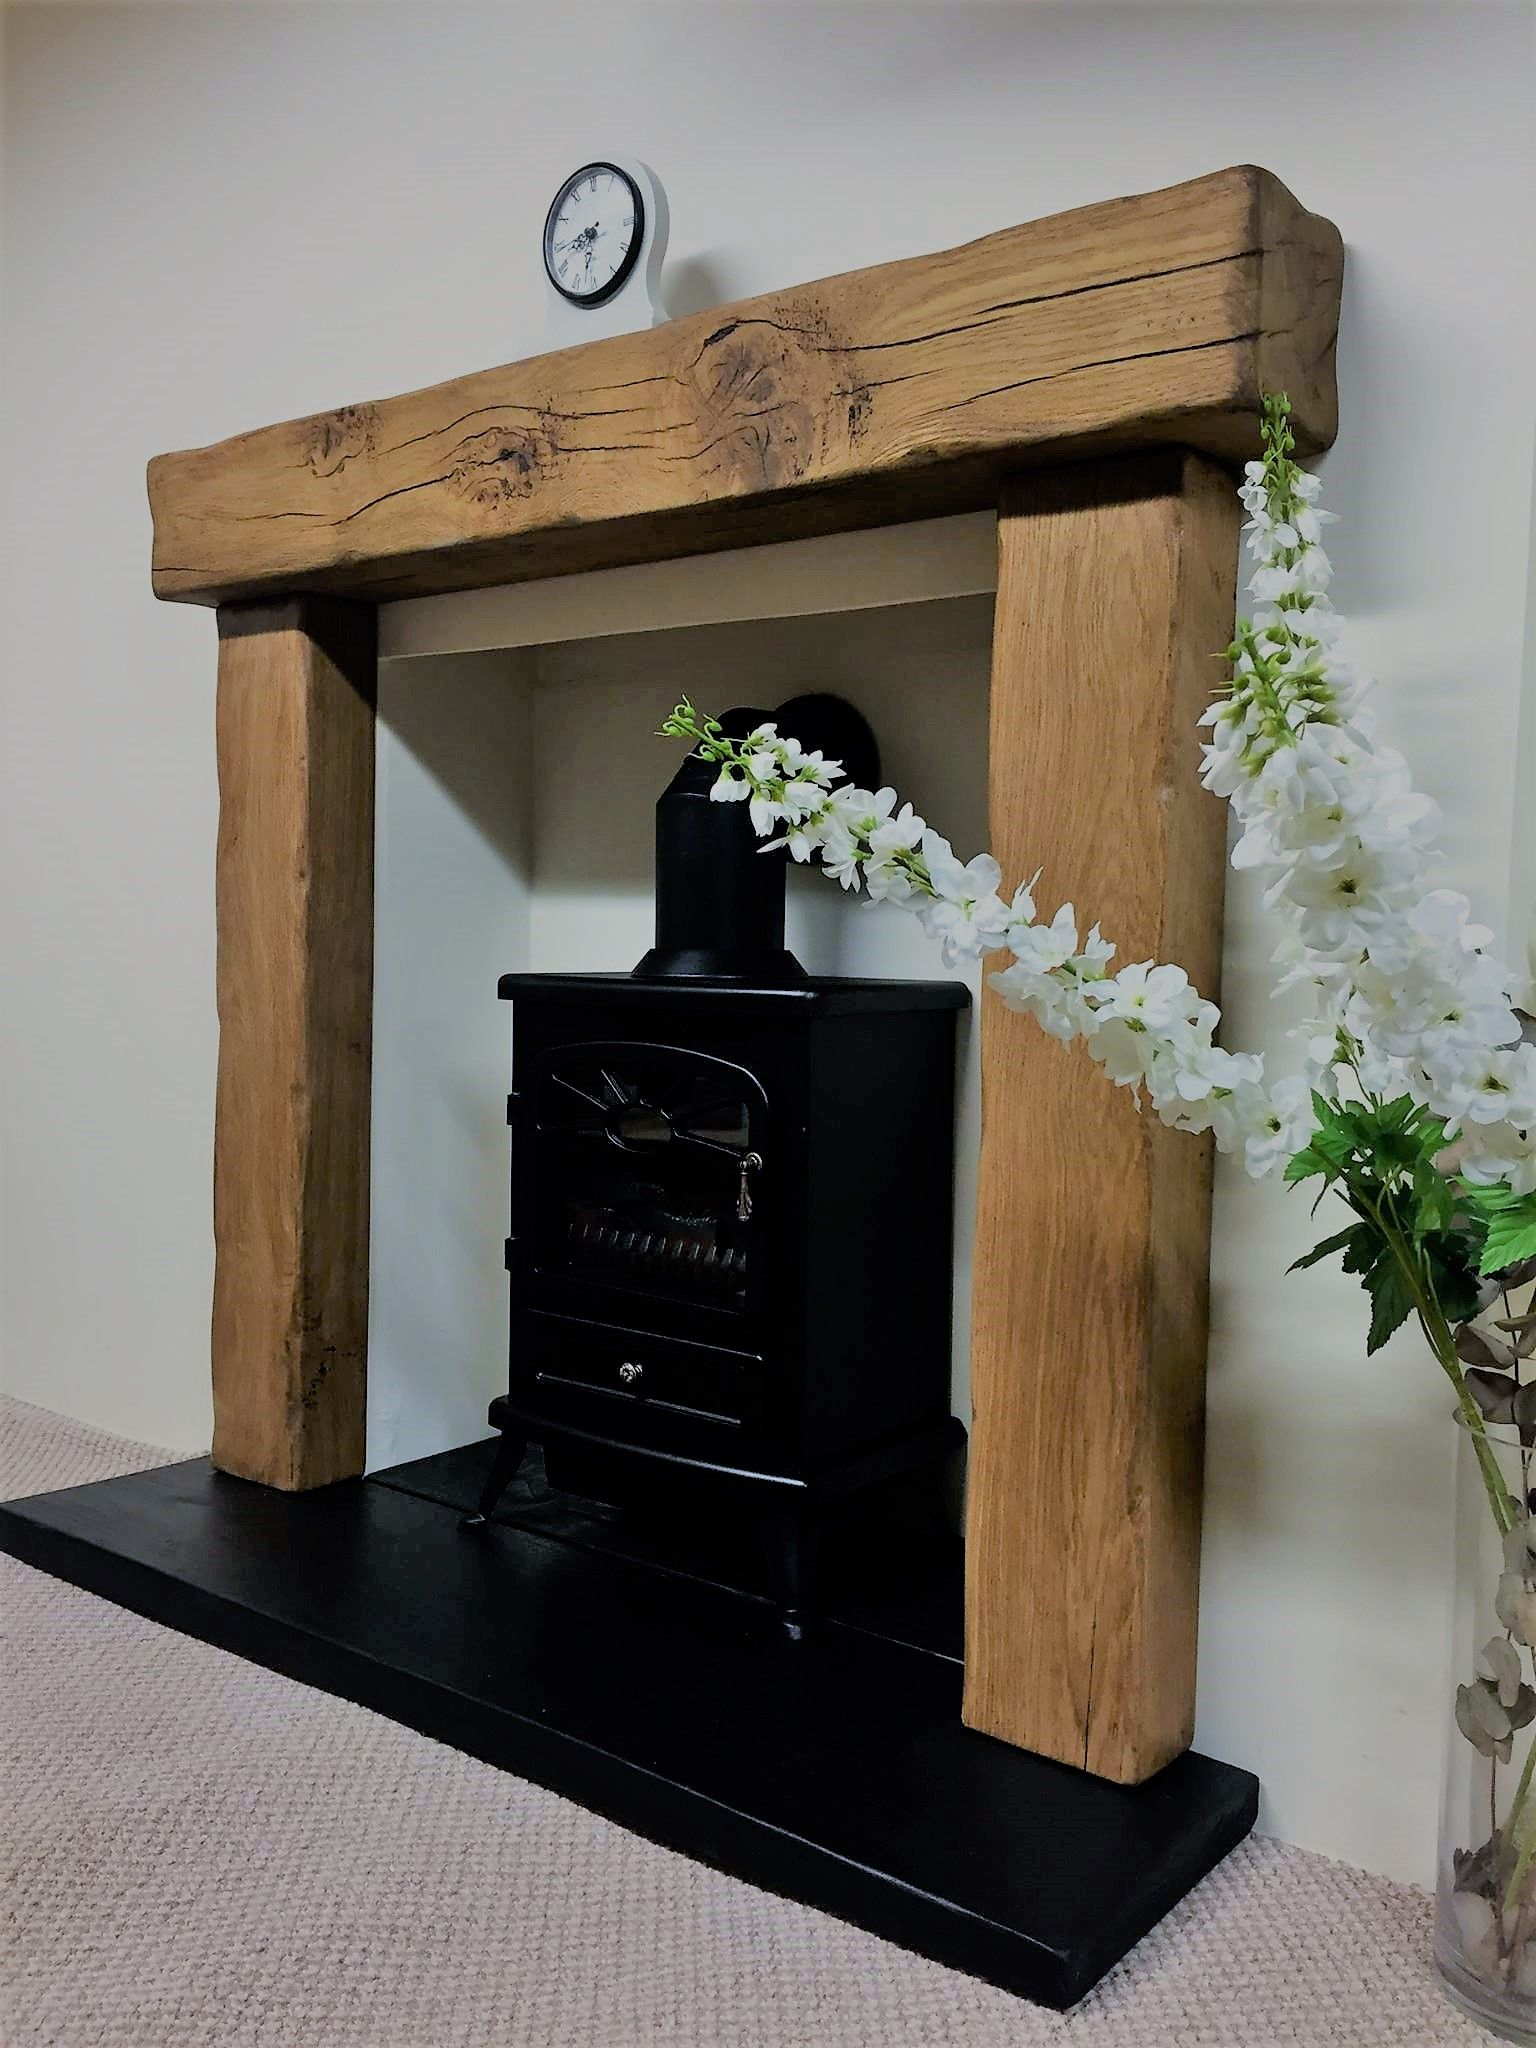 HAND CRAFTED FIRE SURROUND MADE FROM SOLID AGED AIR DRIED